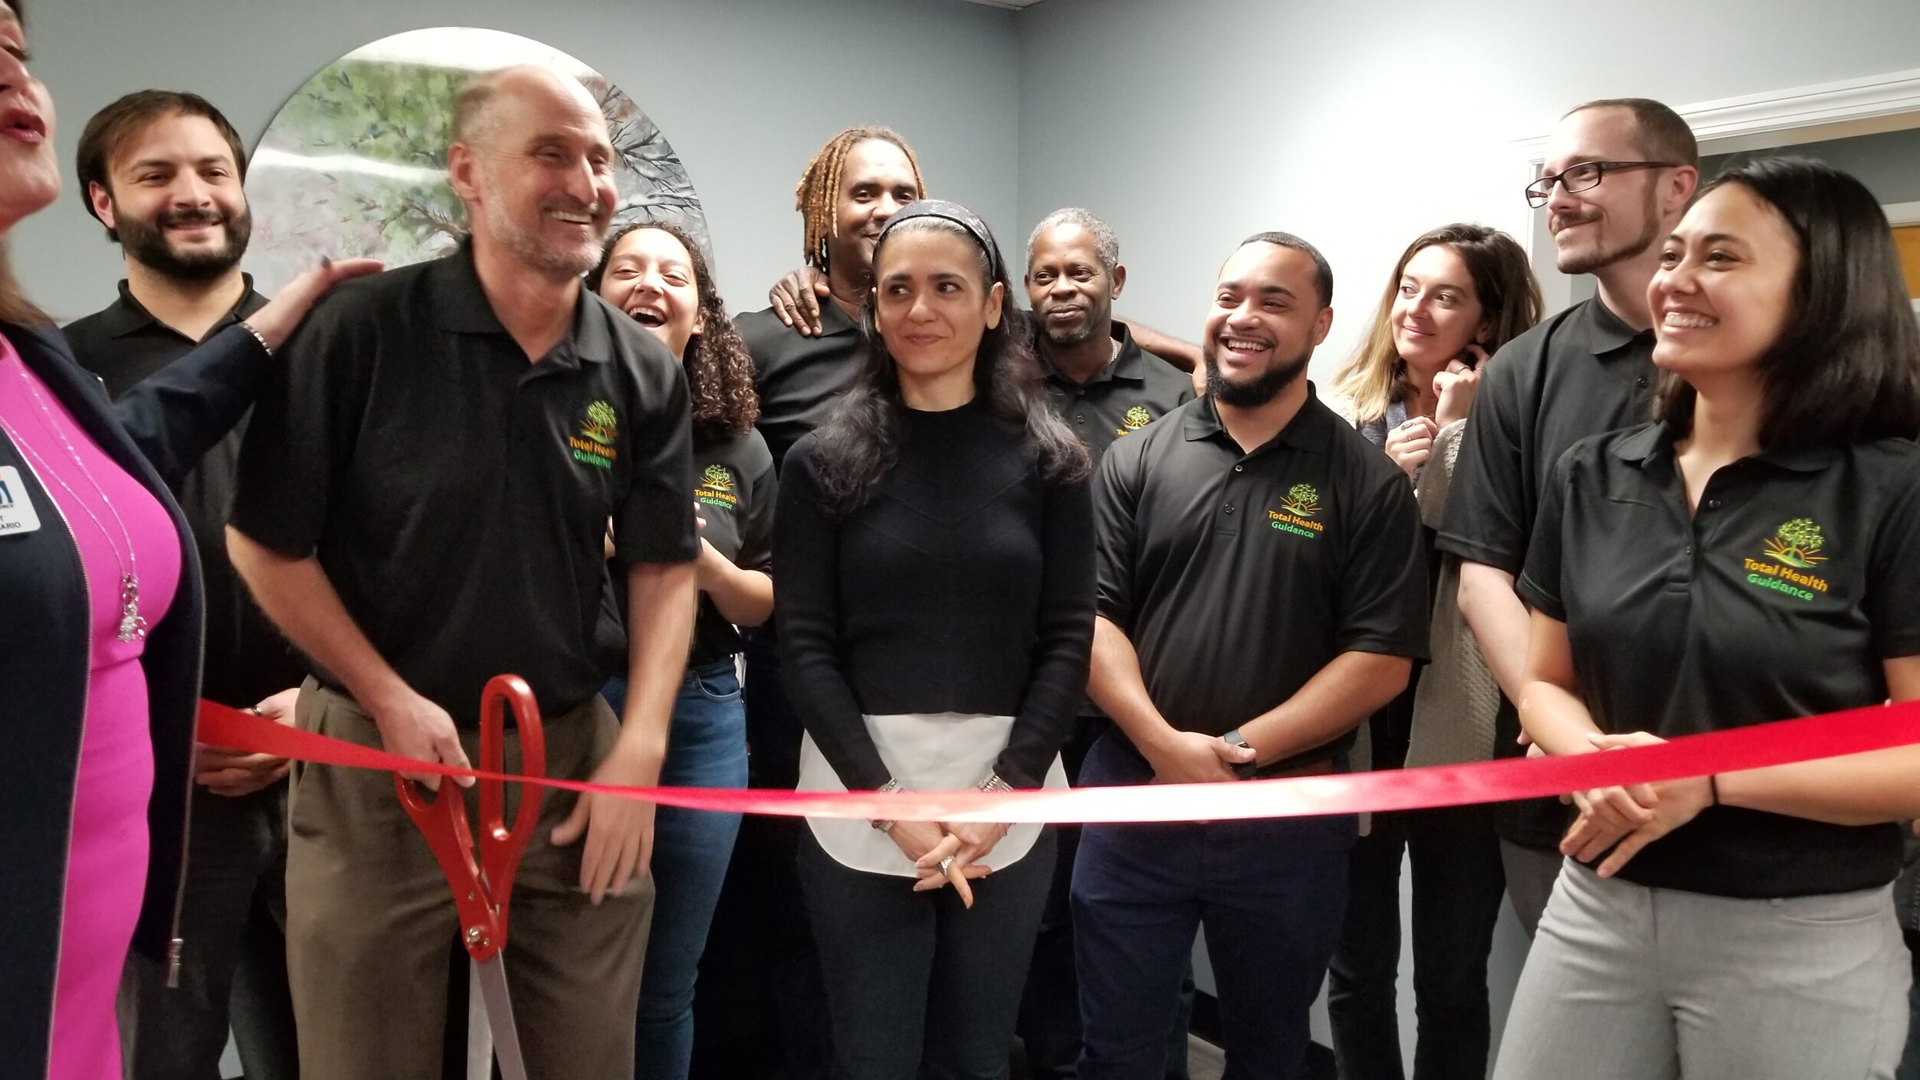 BBIF Florida Helps Counseling & Wellness Company Expand in Severely Distressed Community